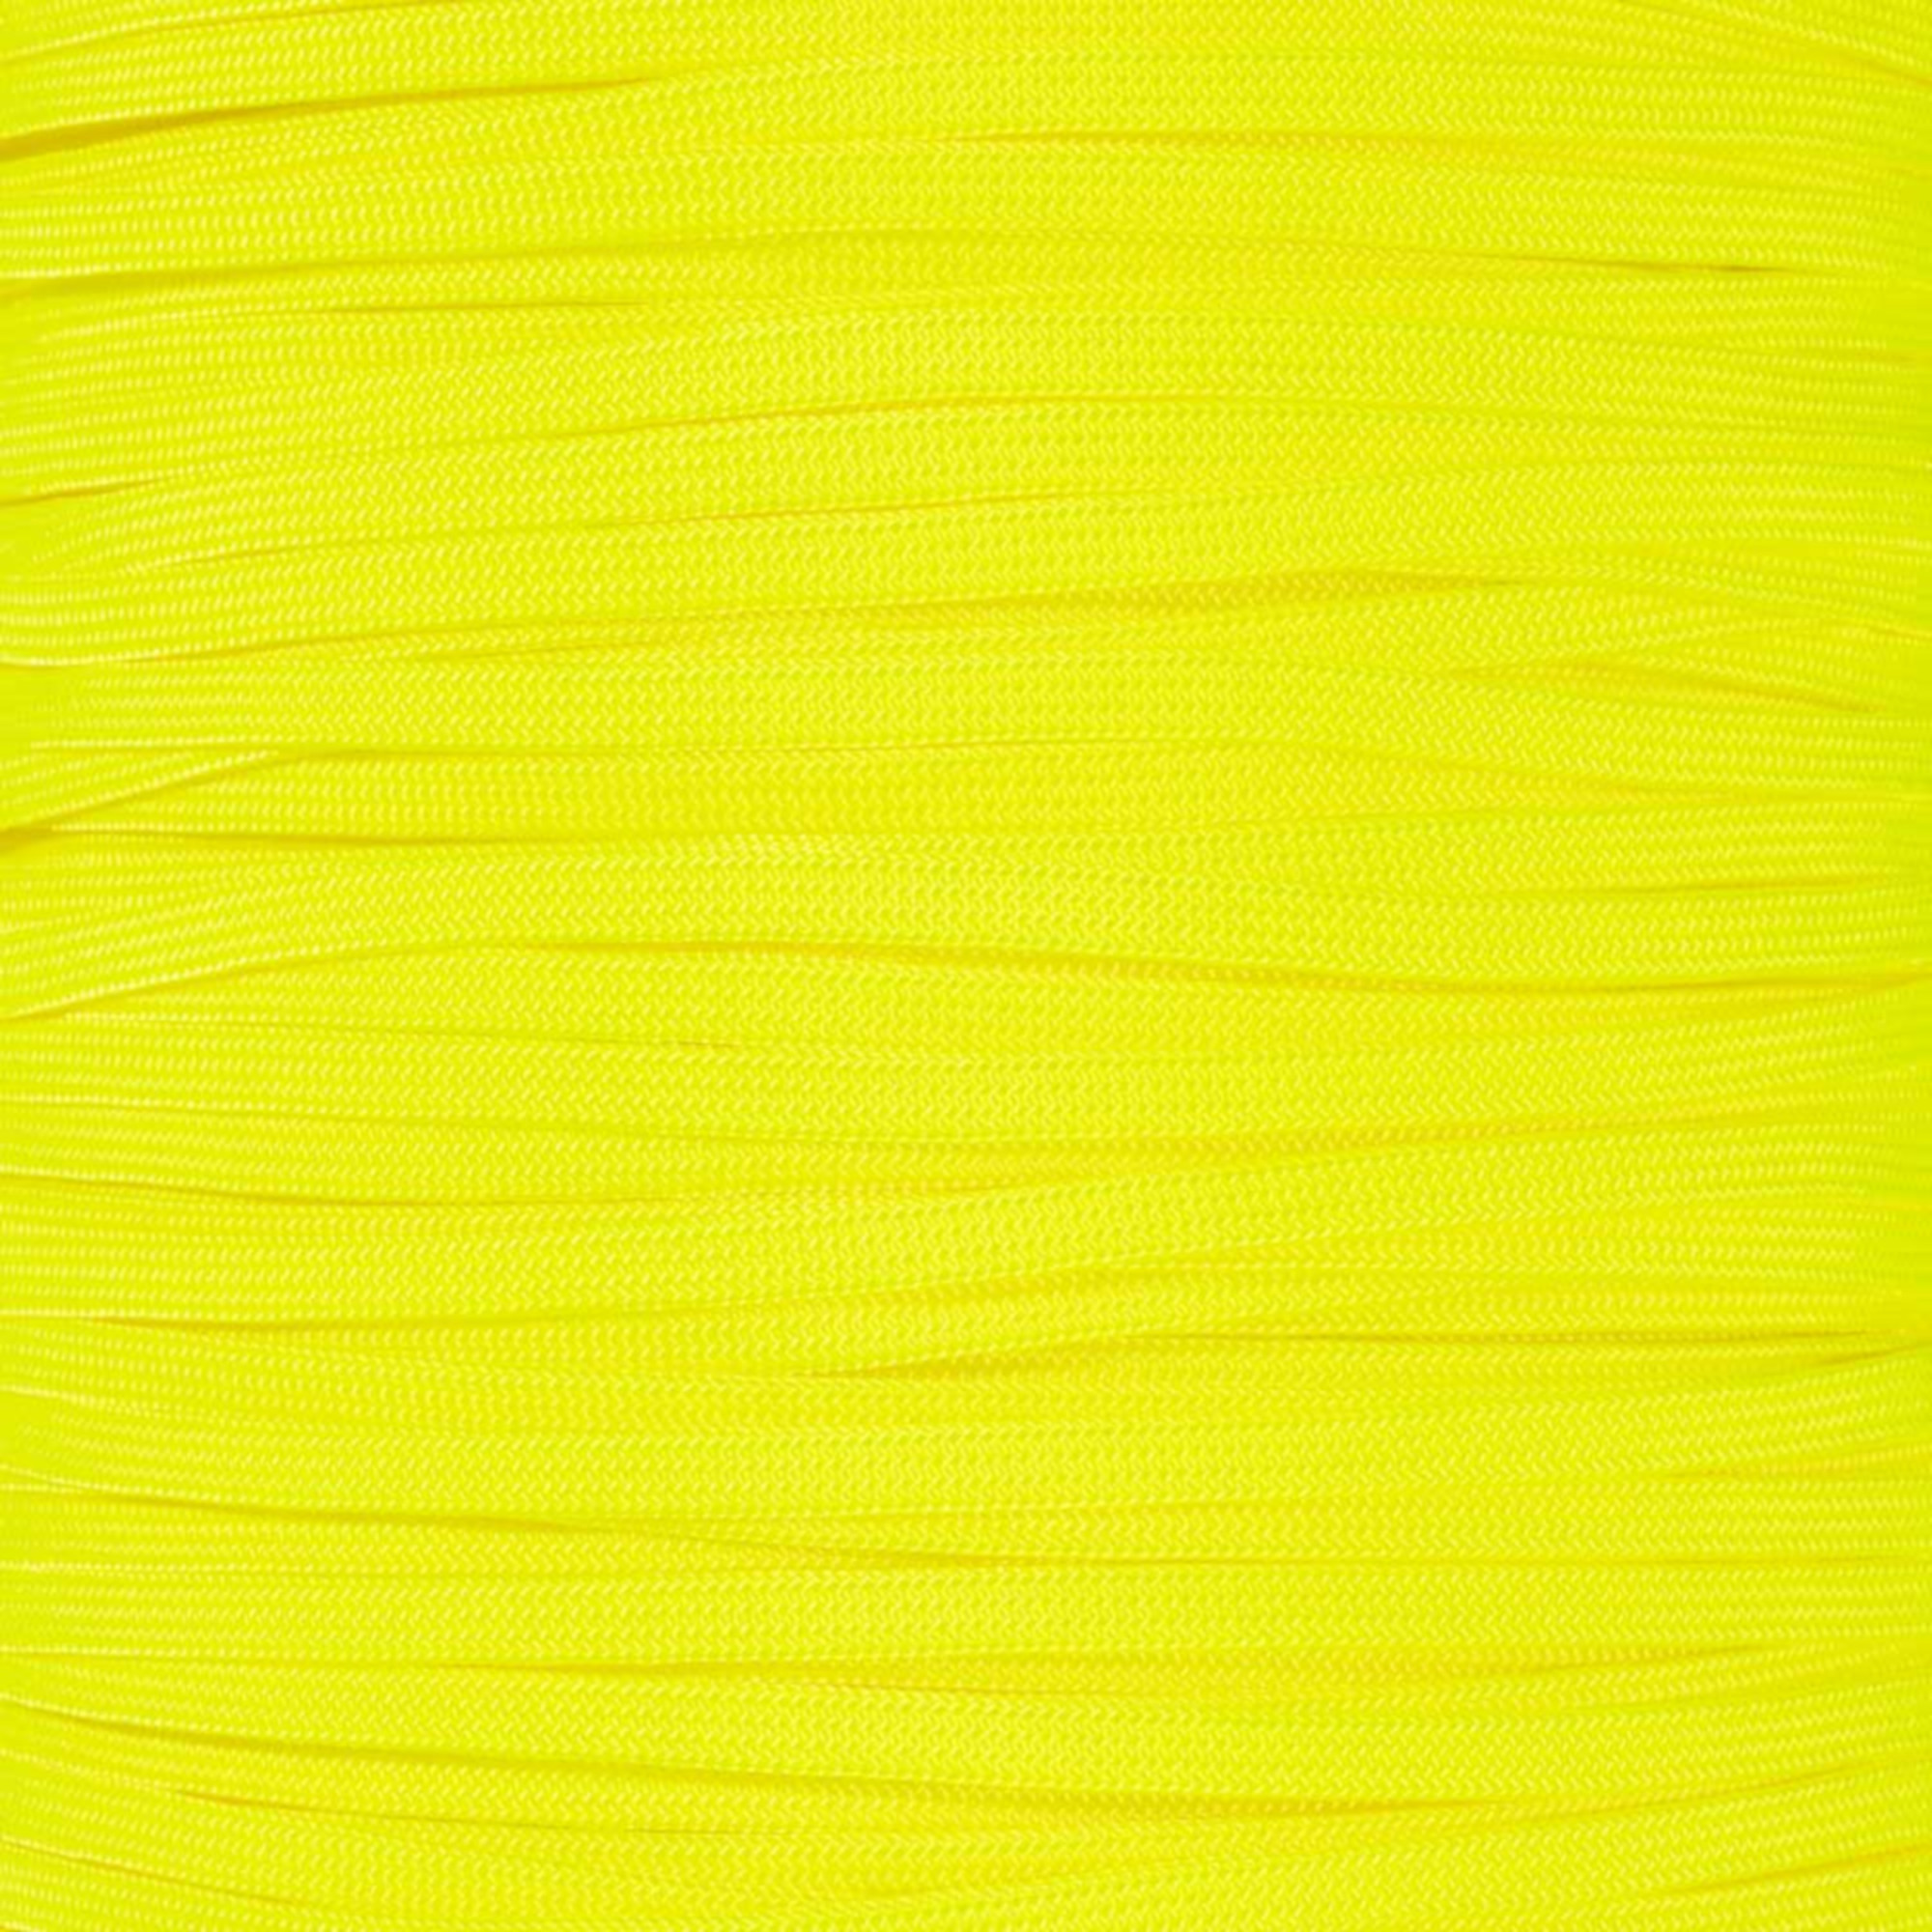 Paracord Planet Coreless 650 Paracord - Multiple Colors - Lengths of 10, 20, 25, 50, 100, 250, 300, 500 or 1000 feet